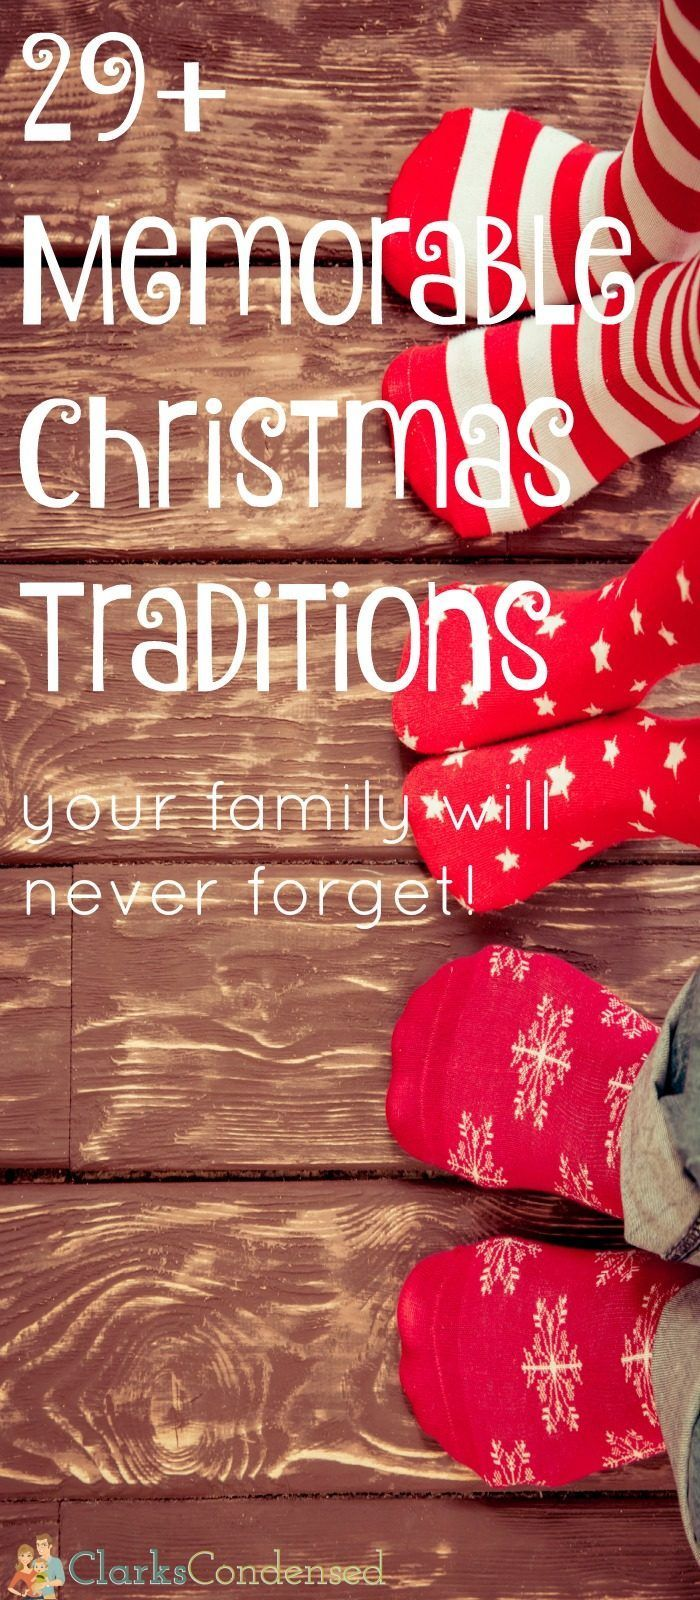 I love Christmas traditions! Here are 29+ memorable family Christmas traditions that will create a lifetime of memories for your family.